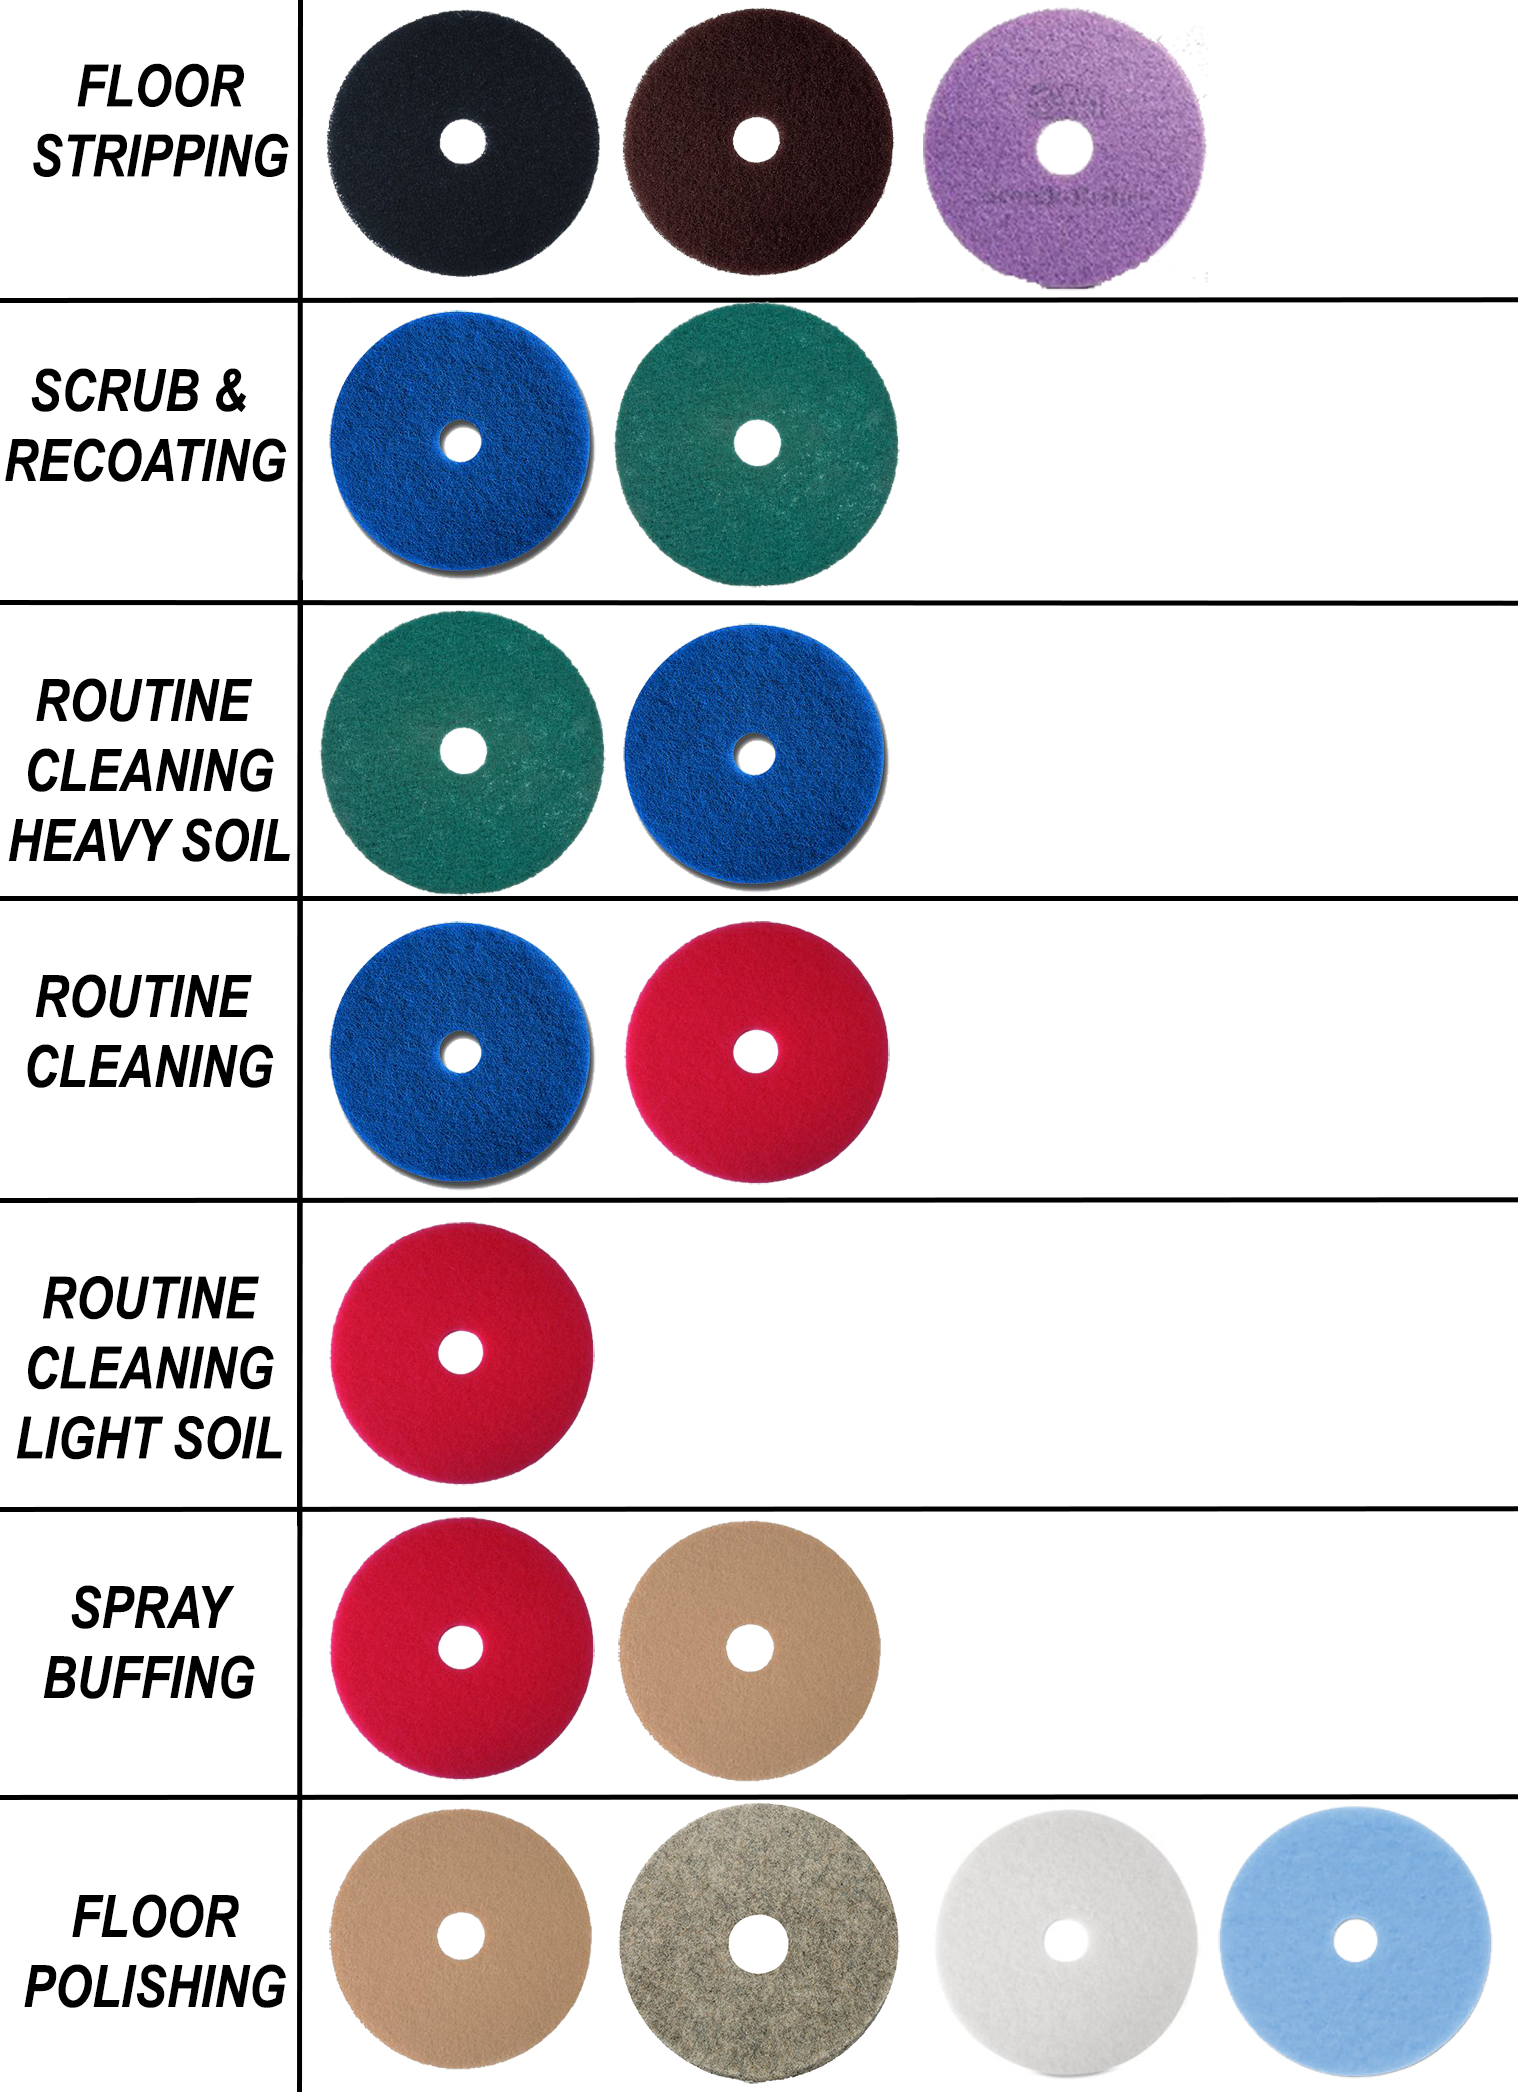 How To Select The Correct Color Floor Pad National